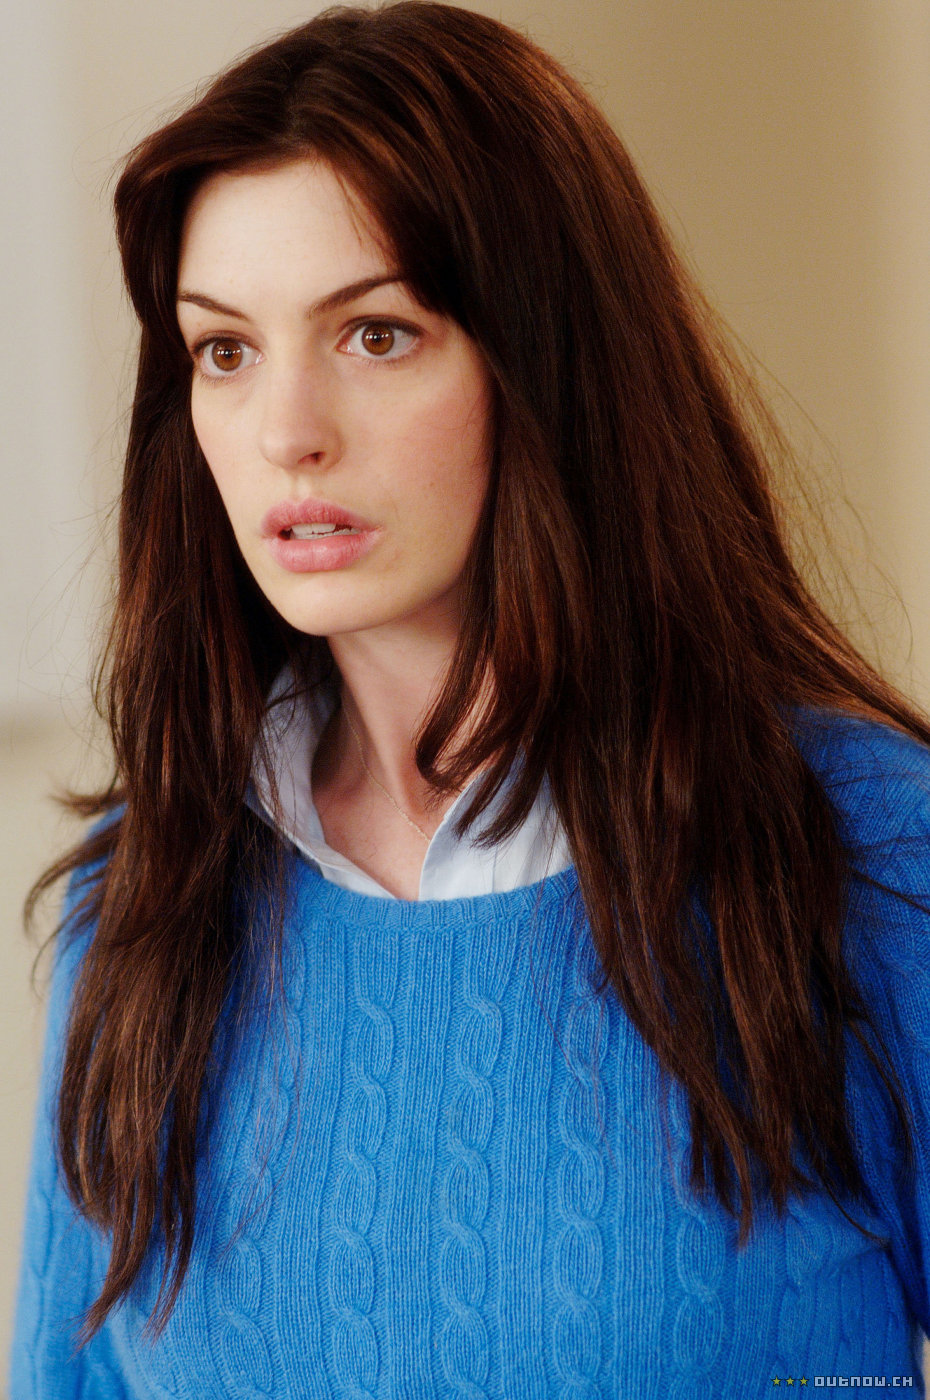 Im im images of anne hathaway - I M Not Even As Trendy As Anne Hathaway At The Start Of The Devil